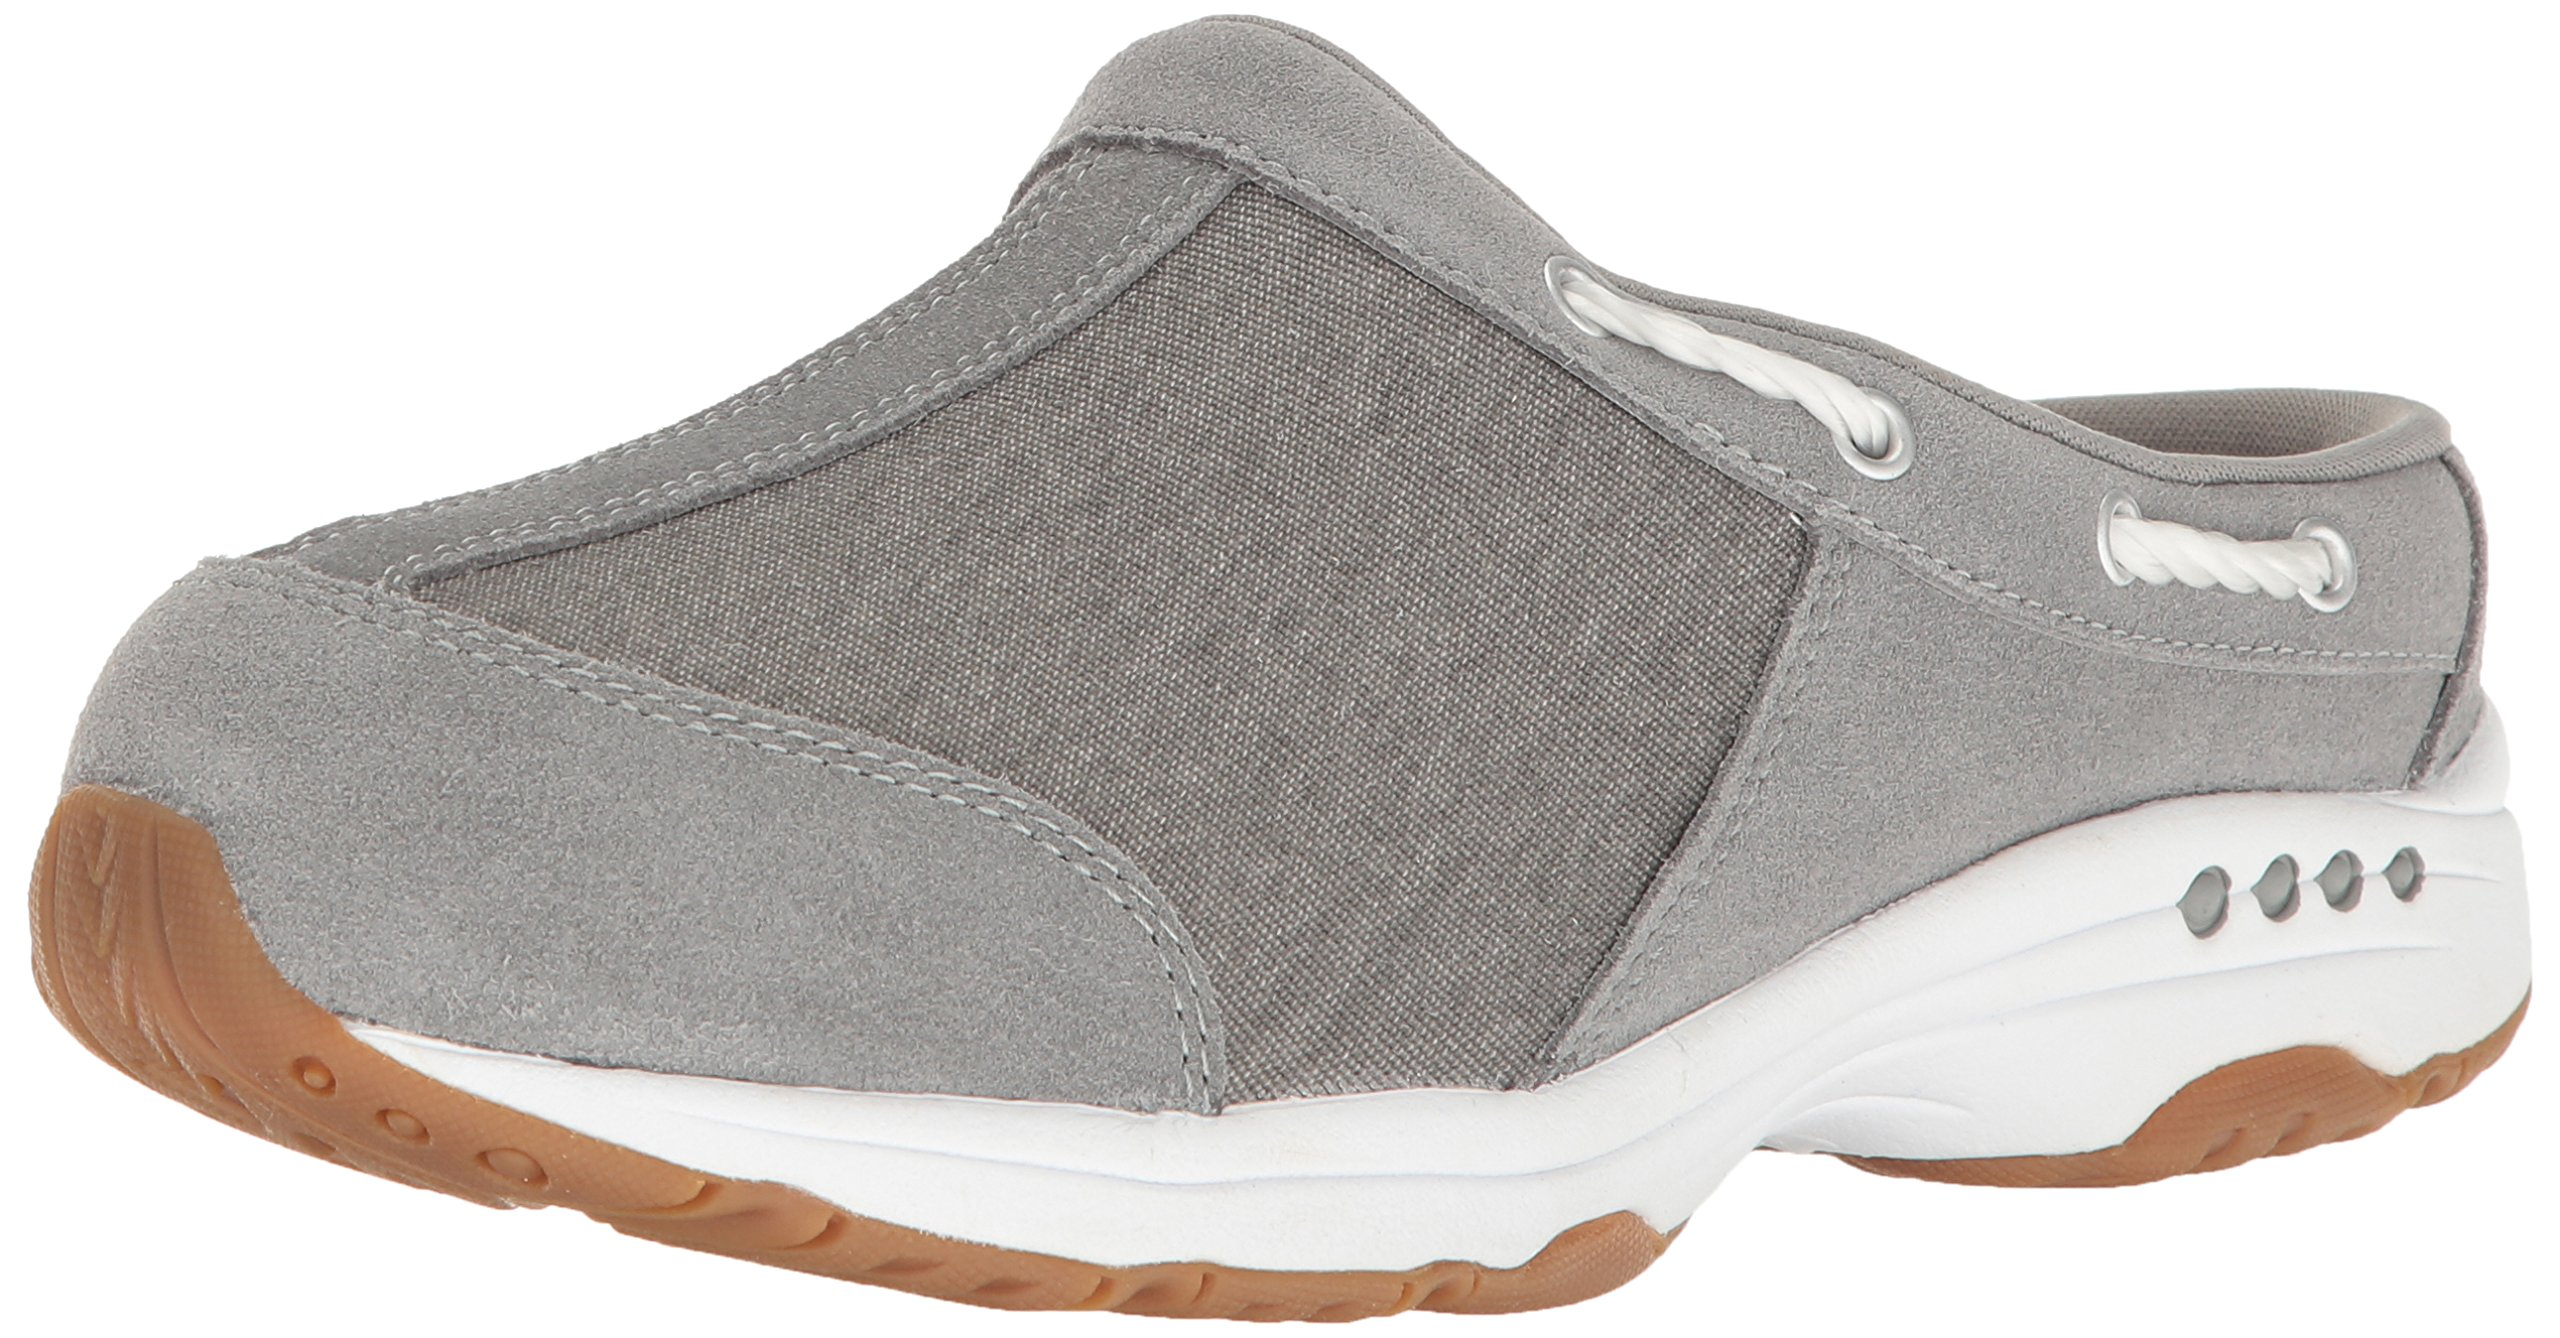 Easy Spirit Women's Travelport Mule, Grey/Grey Suede, 10 M US